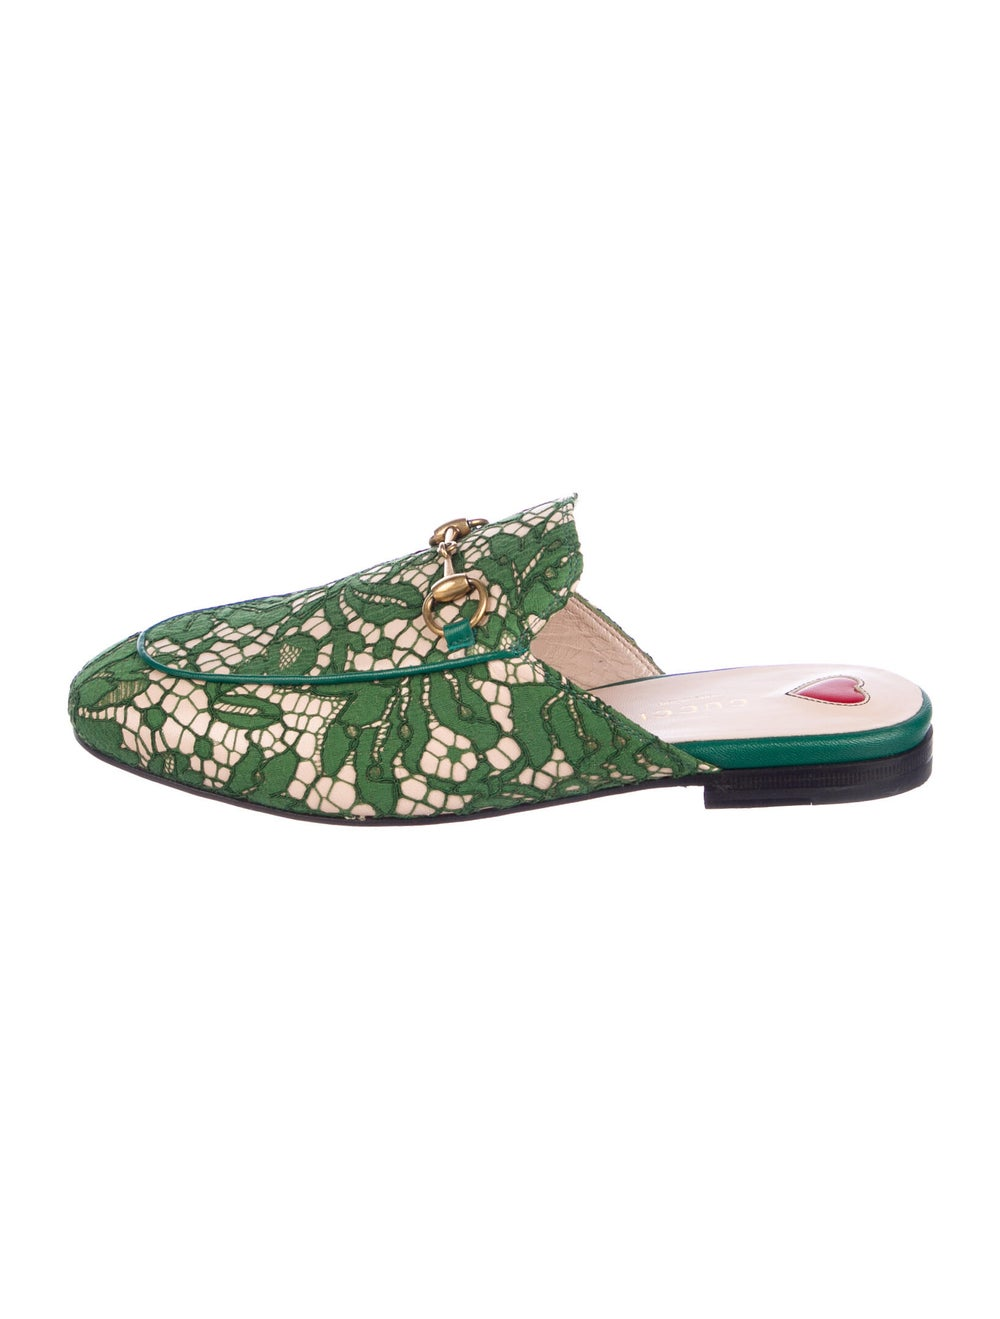 Gucci Princetown Horsebit Accent Mules Green - image 1